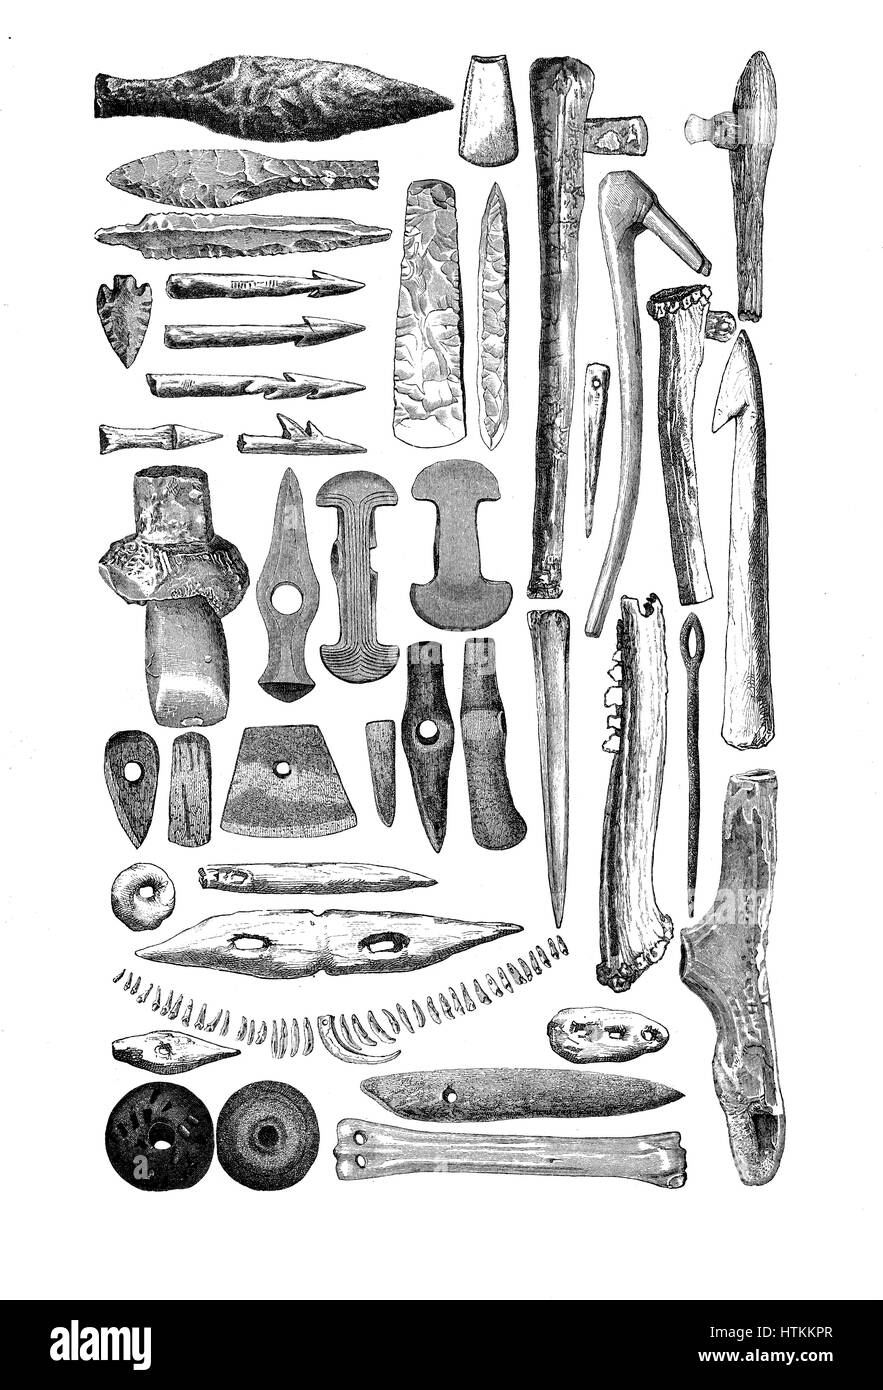 Engraving reproducing artifacts, weapons and tools made of bone and stone found in prehistorical stone age tombs - Stock Image